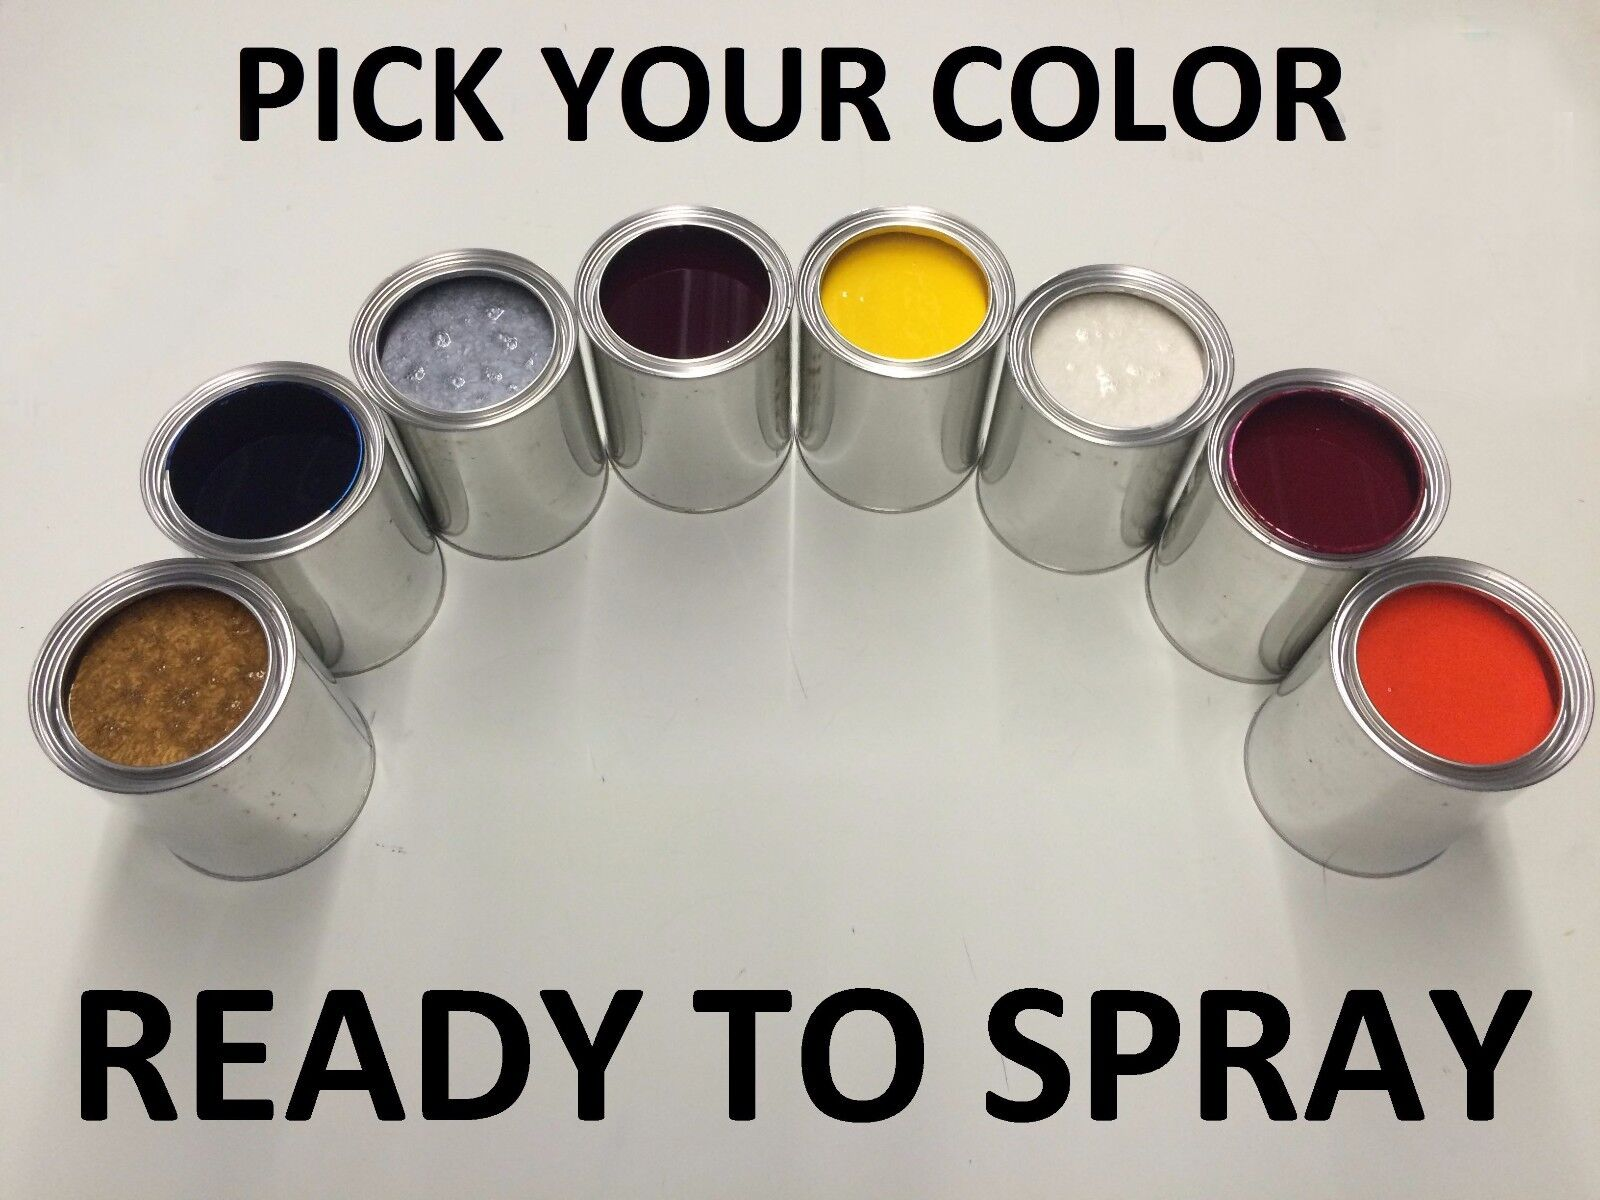 PICK YOUR COLOR - 1 PINT CLEAR + 1 PINT PAINT Ready to Spray for KIA CAR / SUV